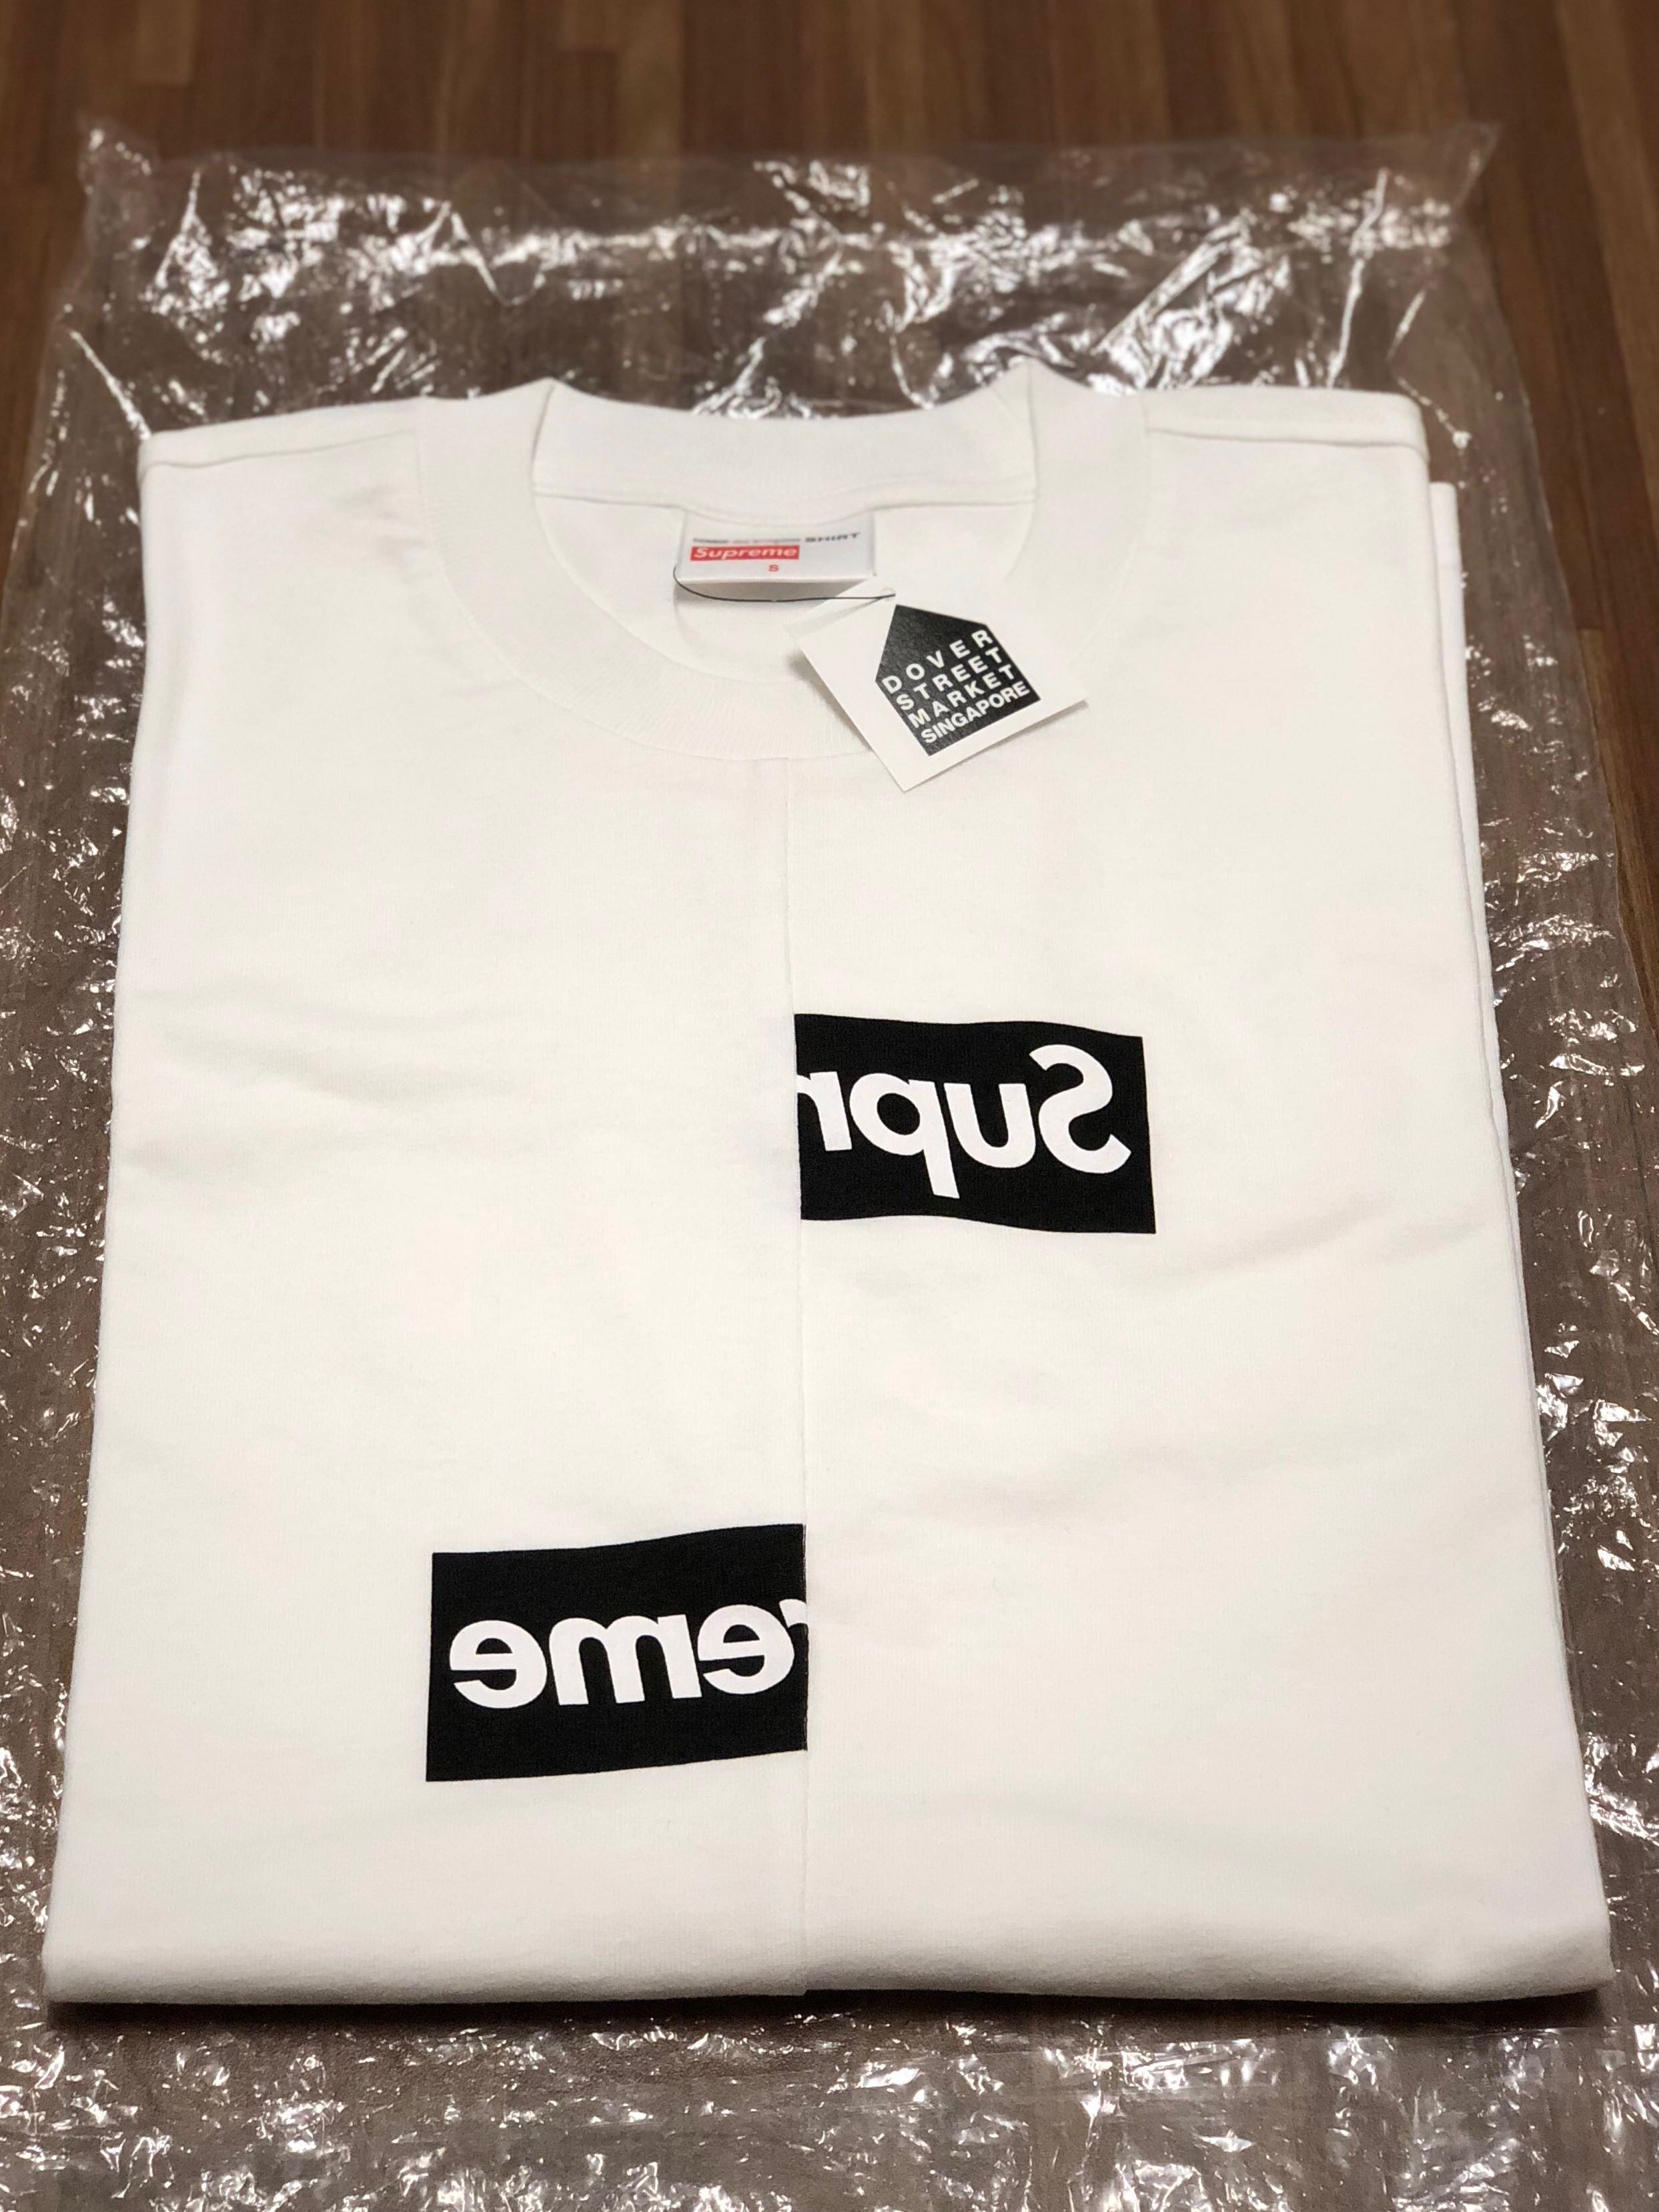 d9e0b61f8b28 Supreme x Comme des Garcons (CDG) Split Box Logo White Tee, Men's ...